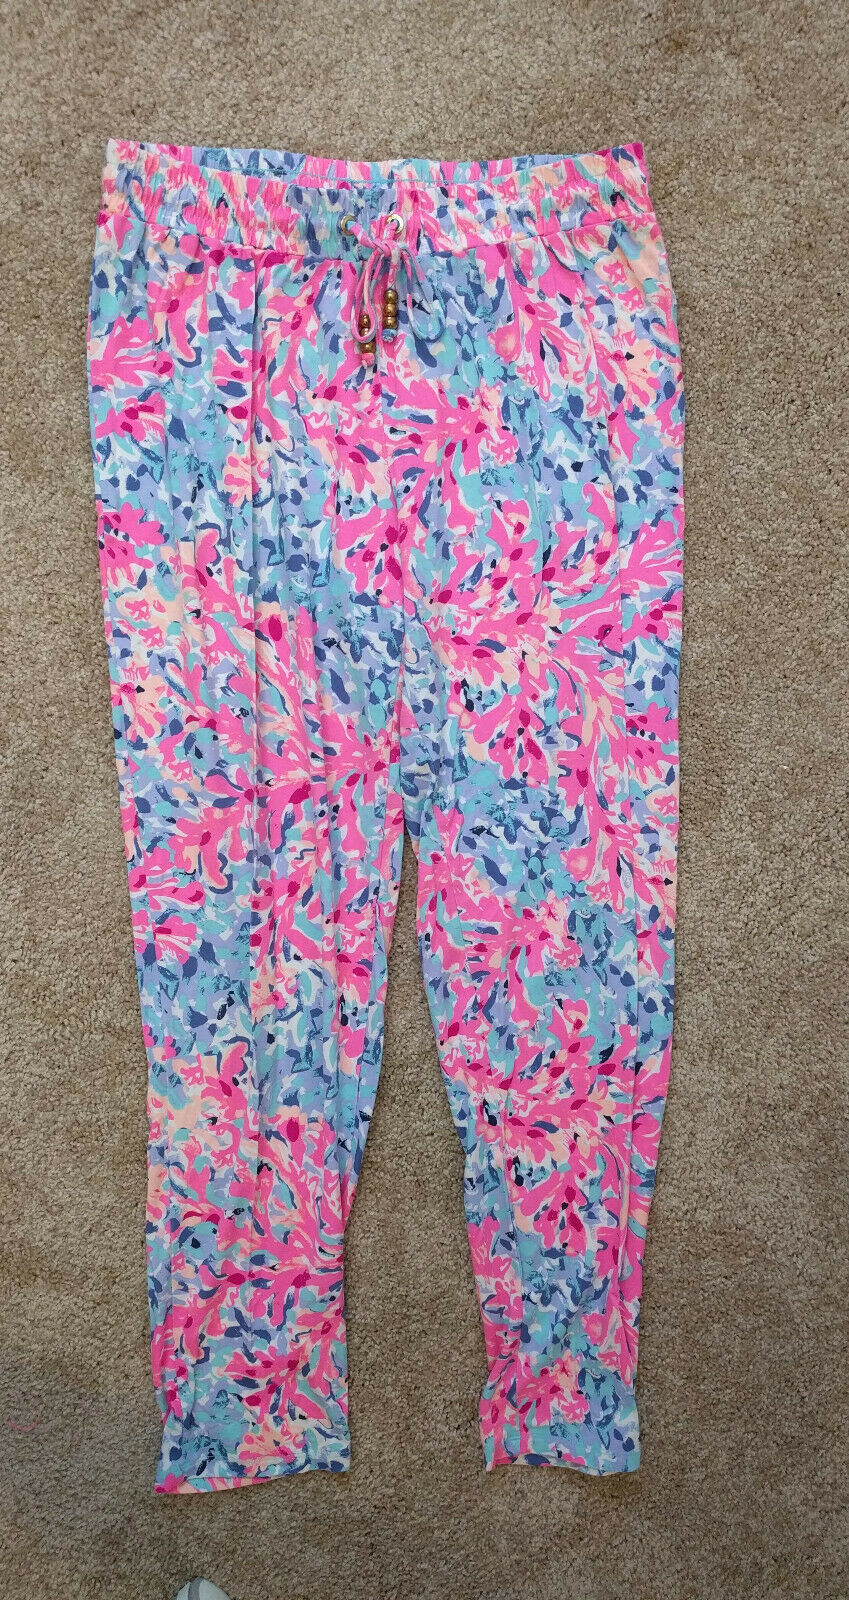 Lilly Pulitzer Coco Coral Crab Lola Pants Lounge Pull On Slim Comfy Größe Small